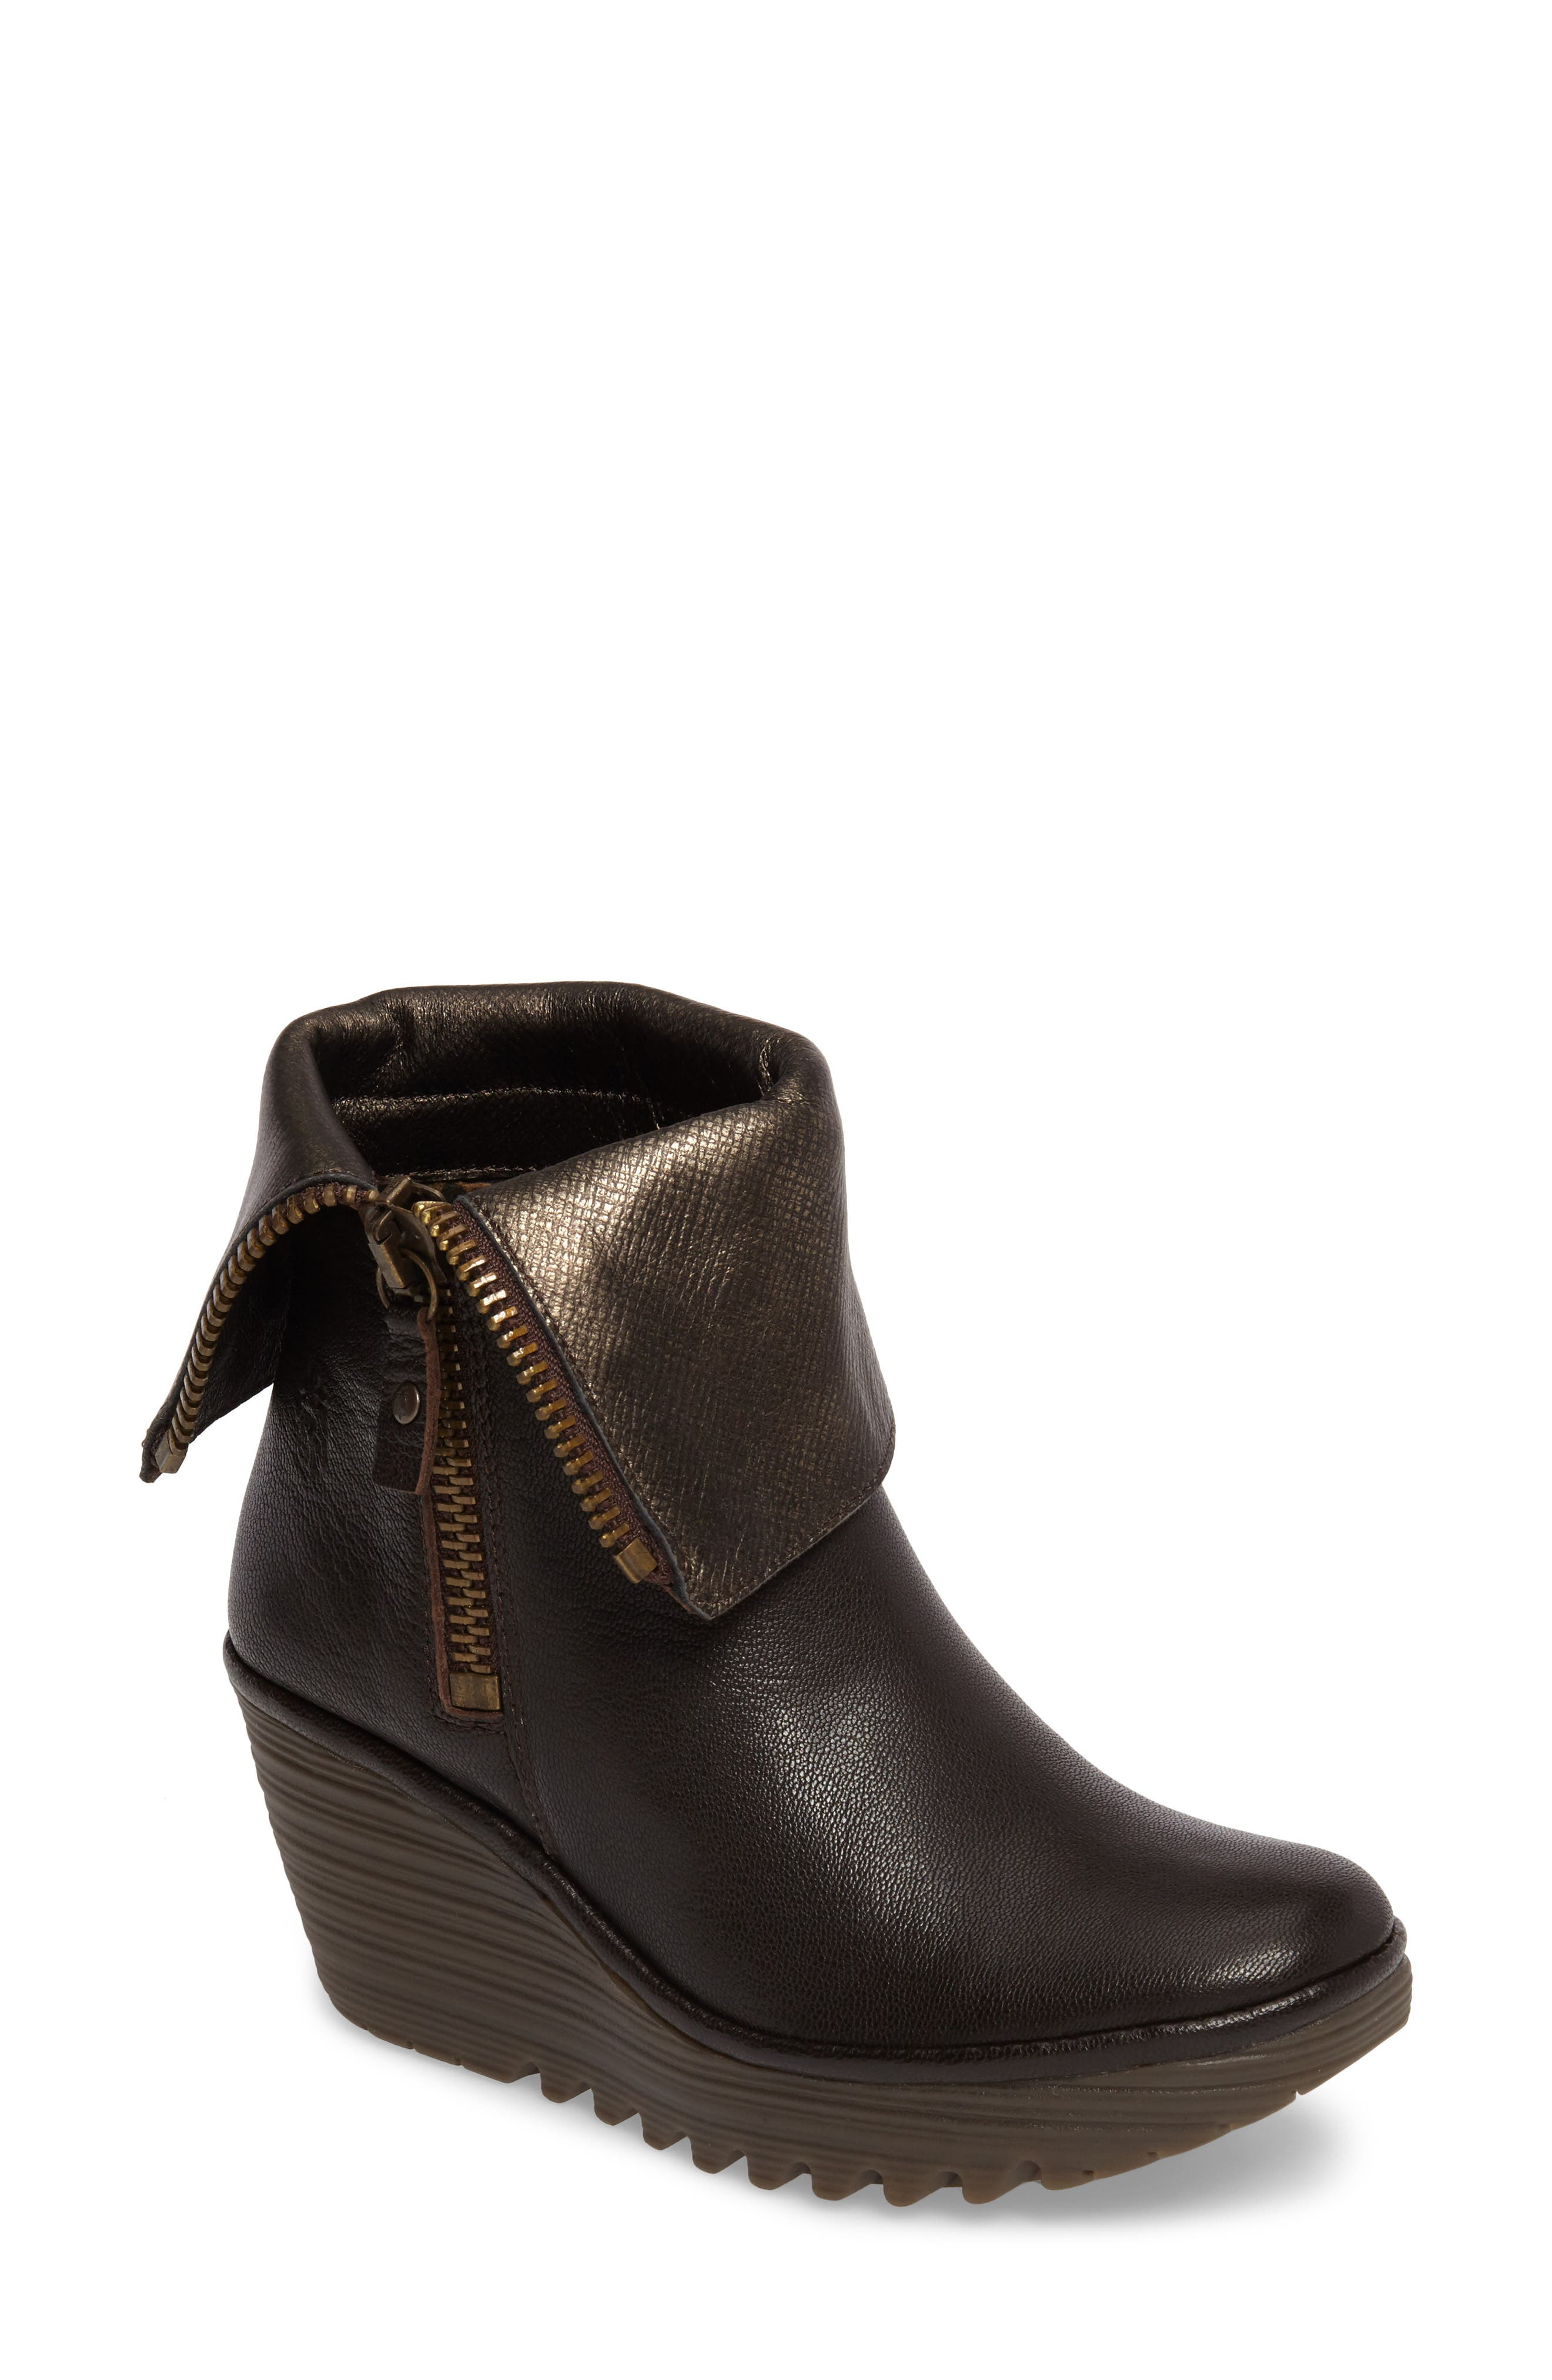 Fly London 'Yex' Platform Wedge Bootie (Women)